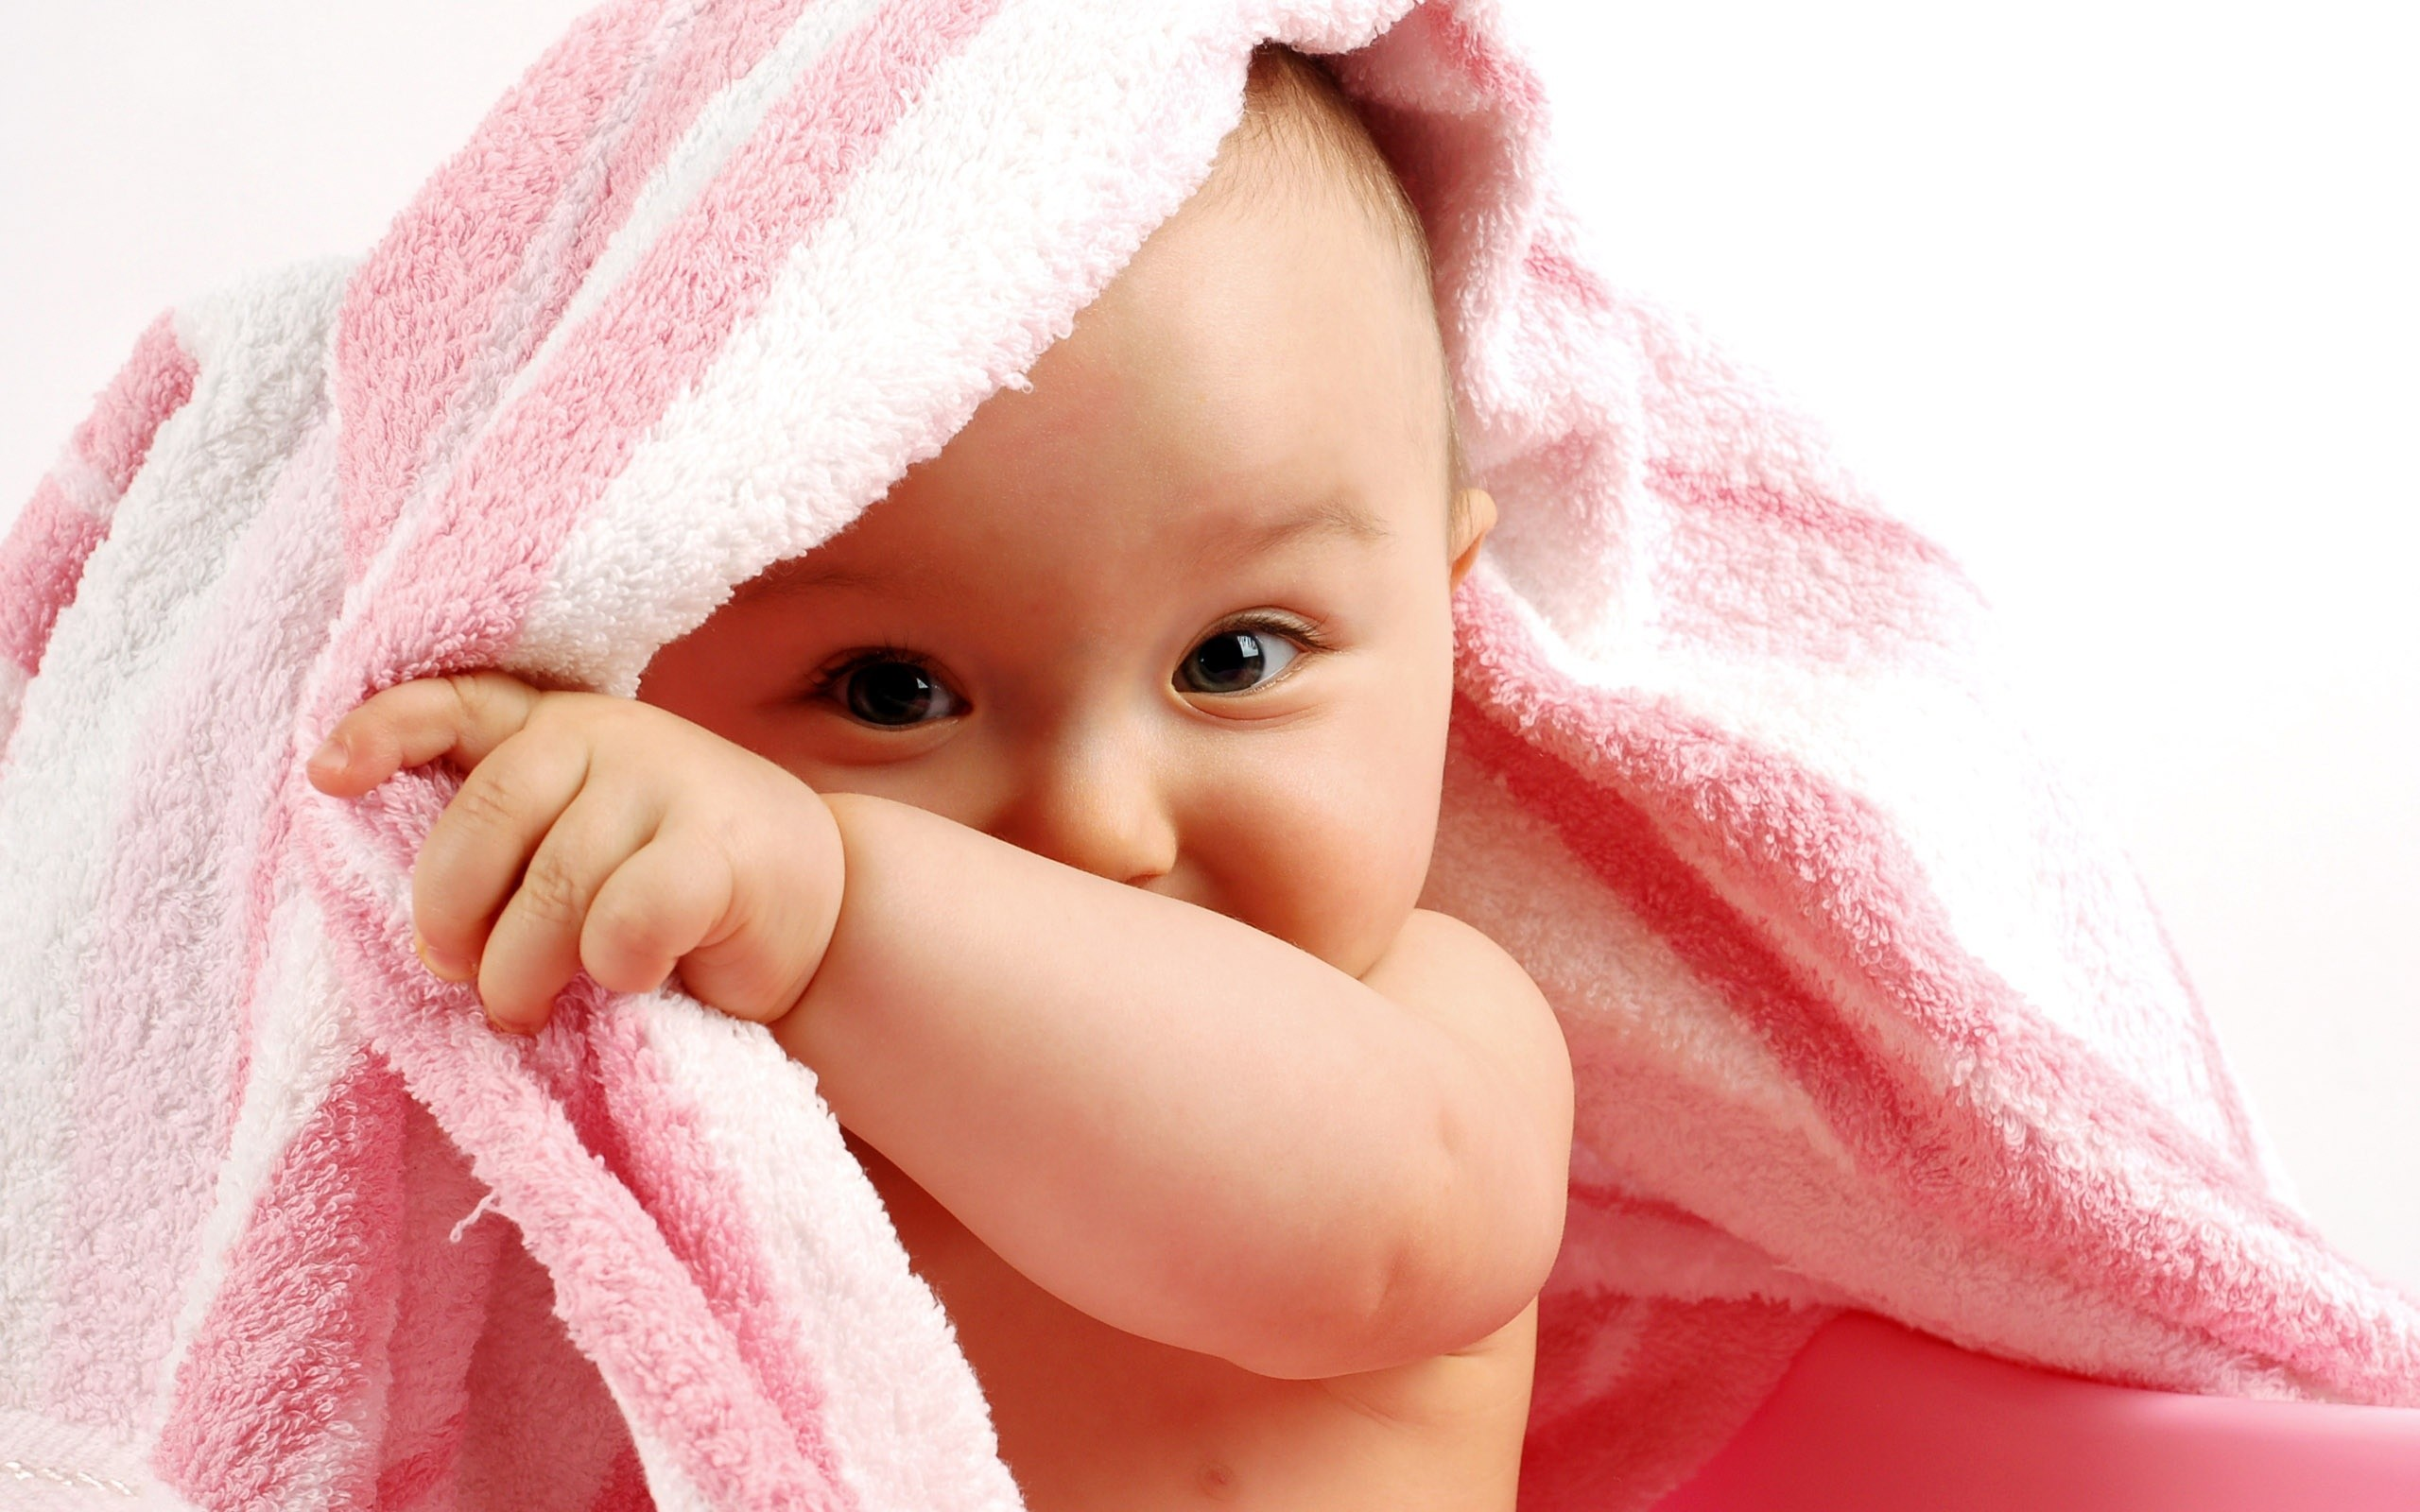 boy baby HD Wallpaper